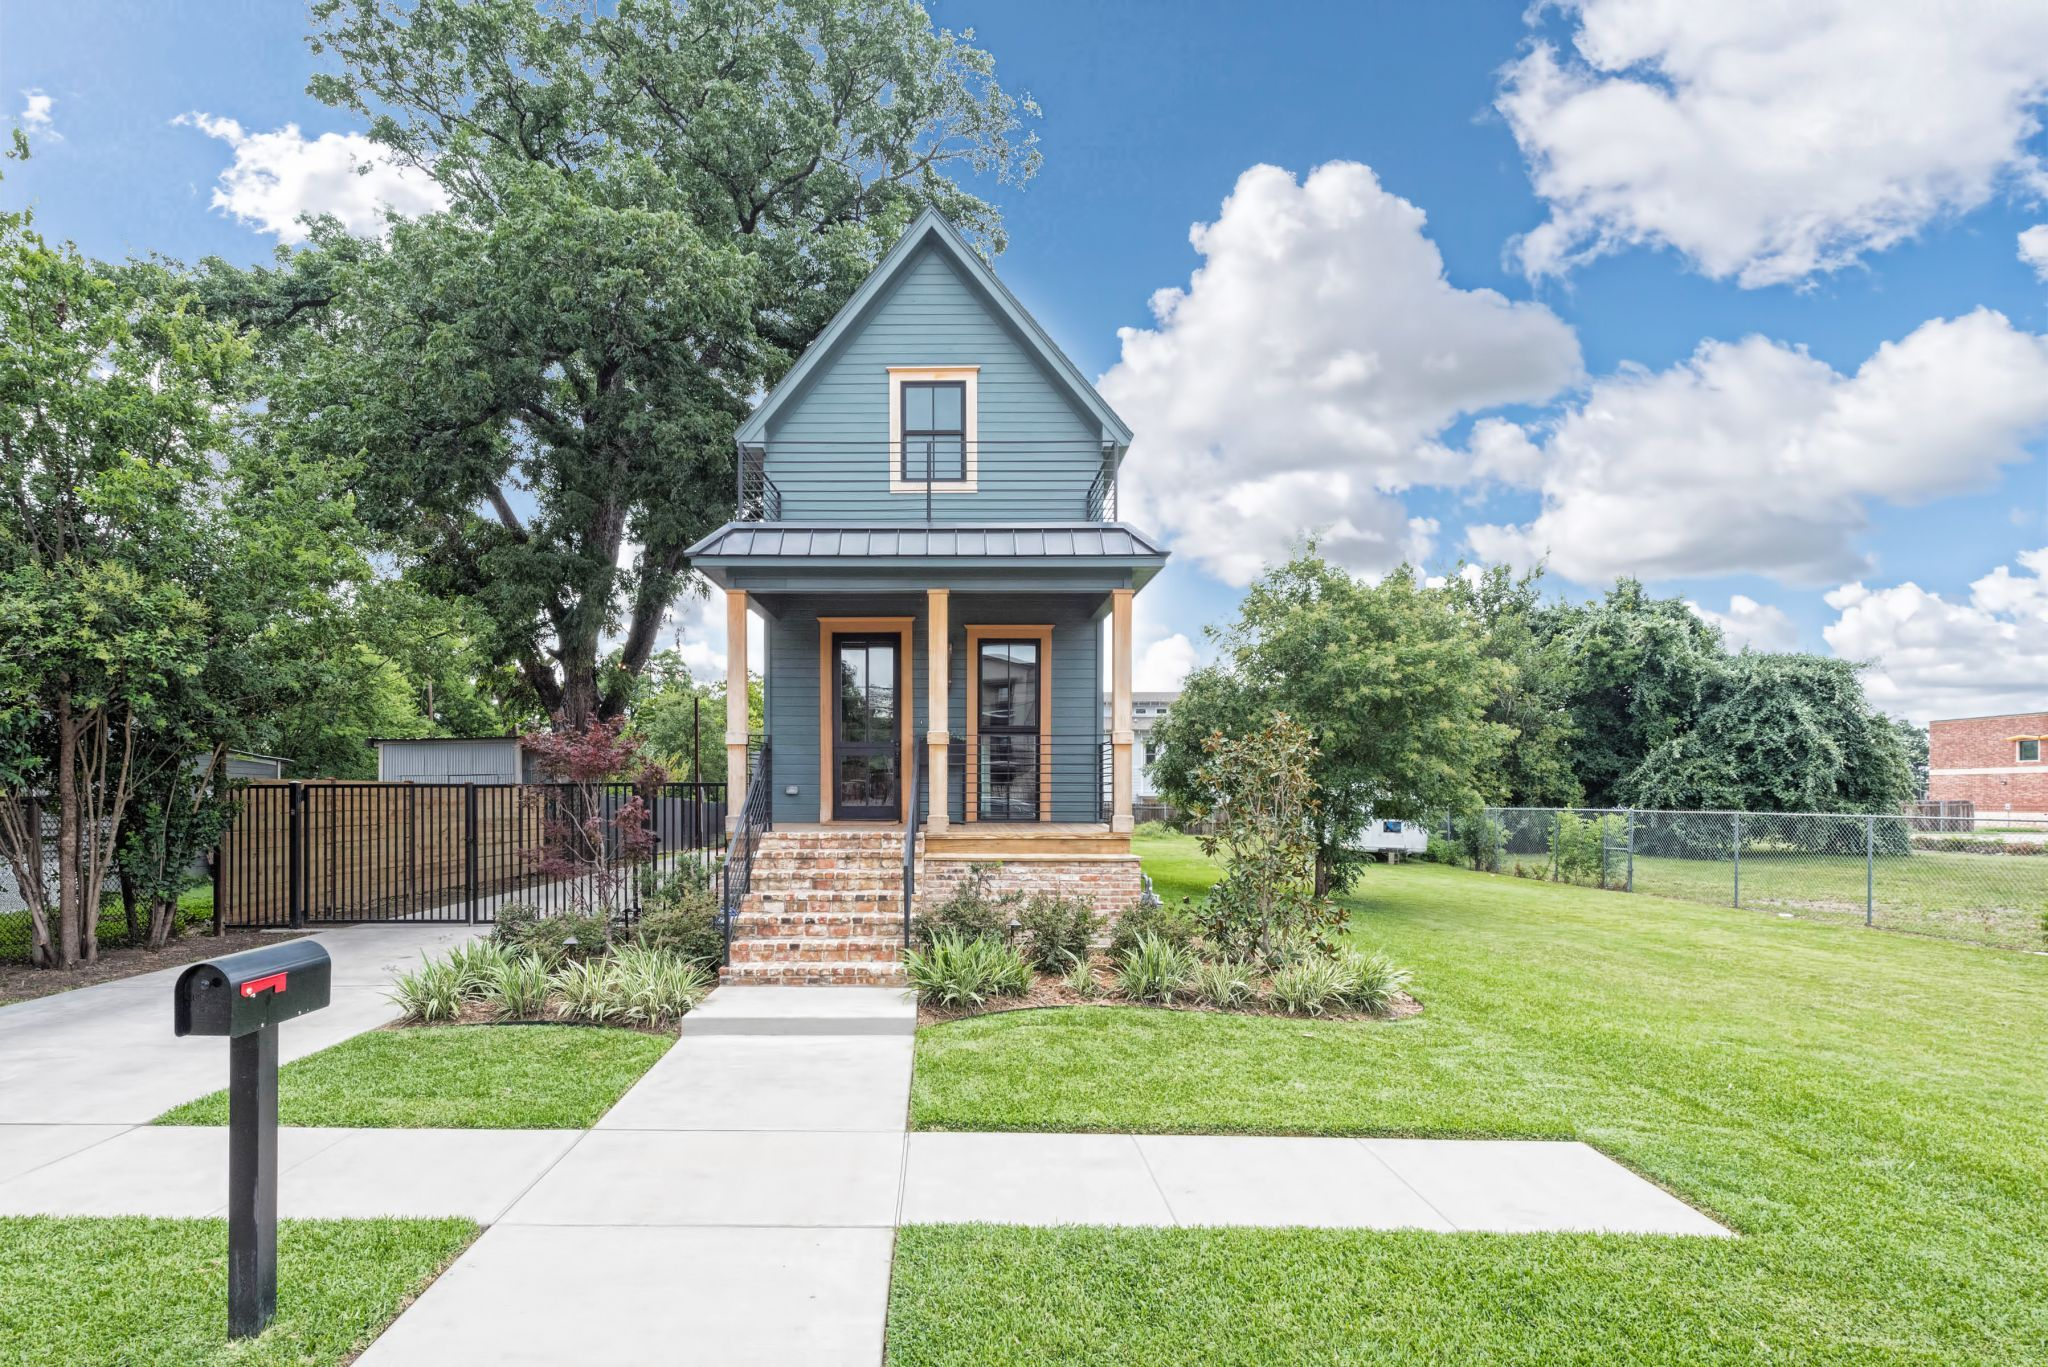 Fixer Upper' shotgun house for sale in Waco for $950,000